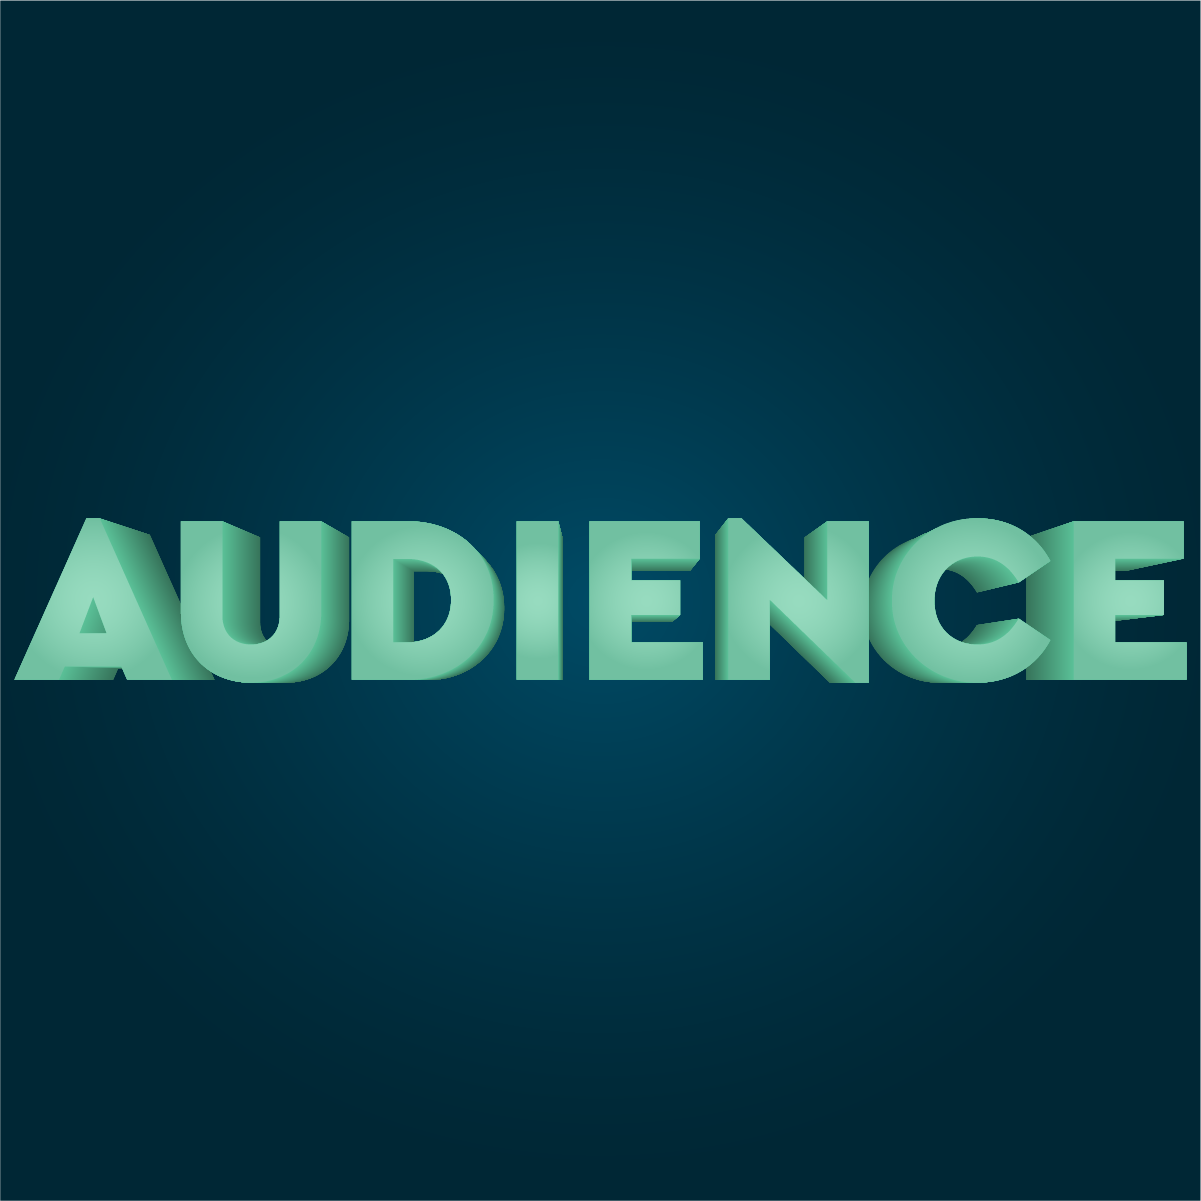 2.Who is your audience? image